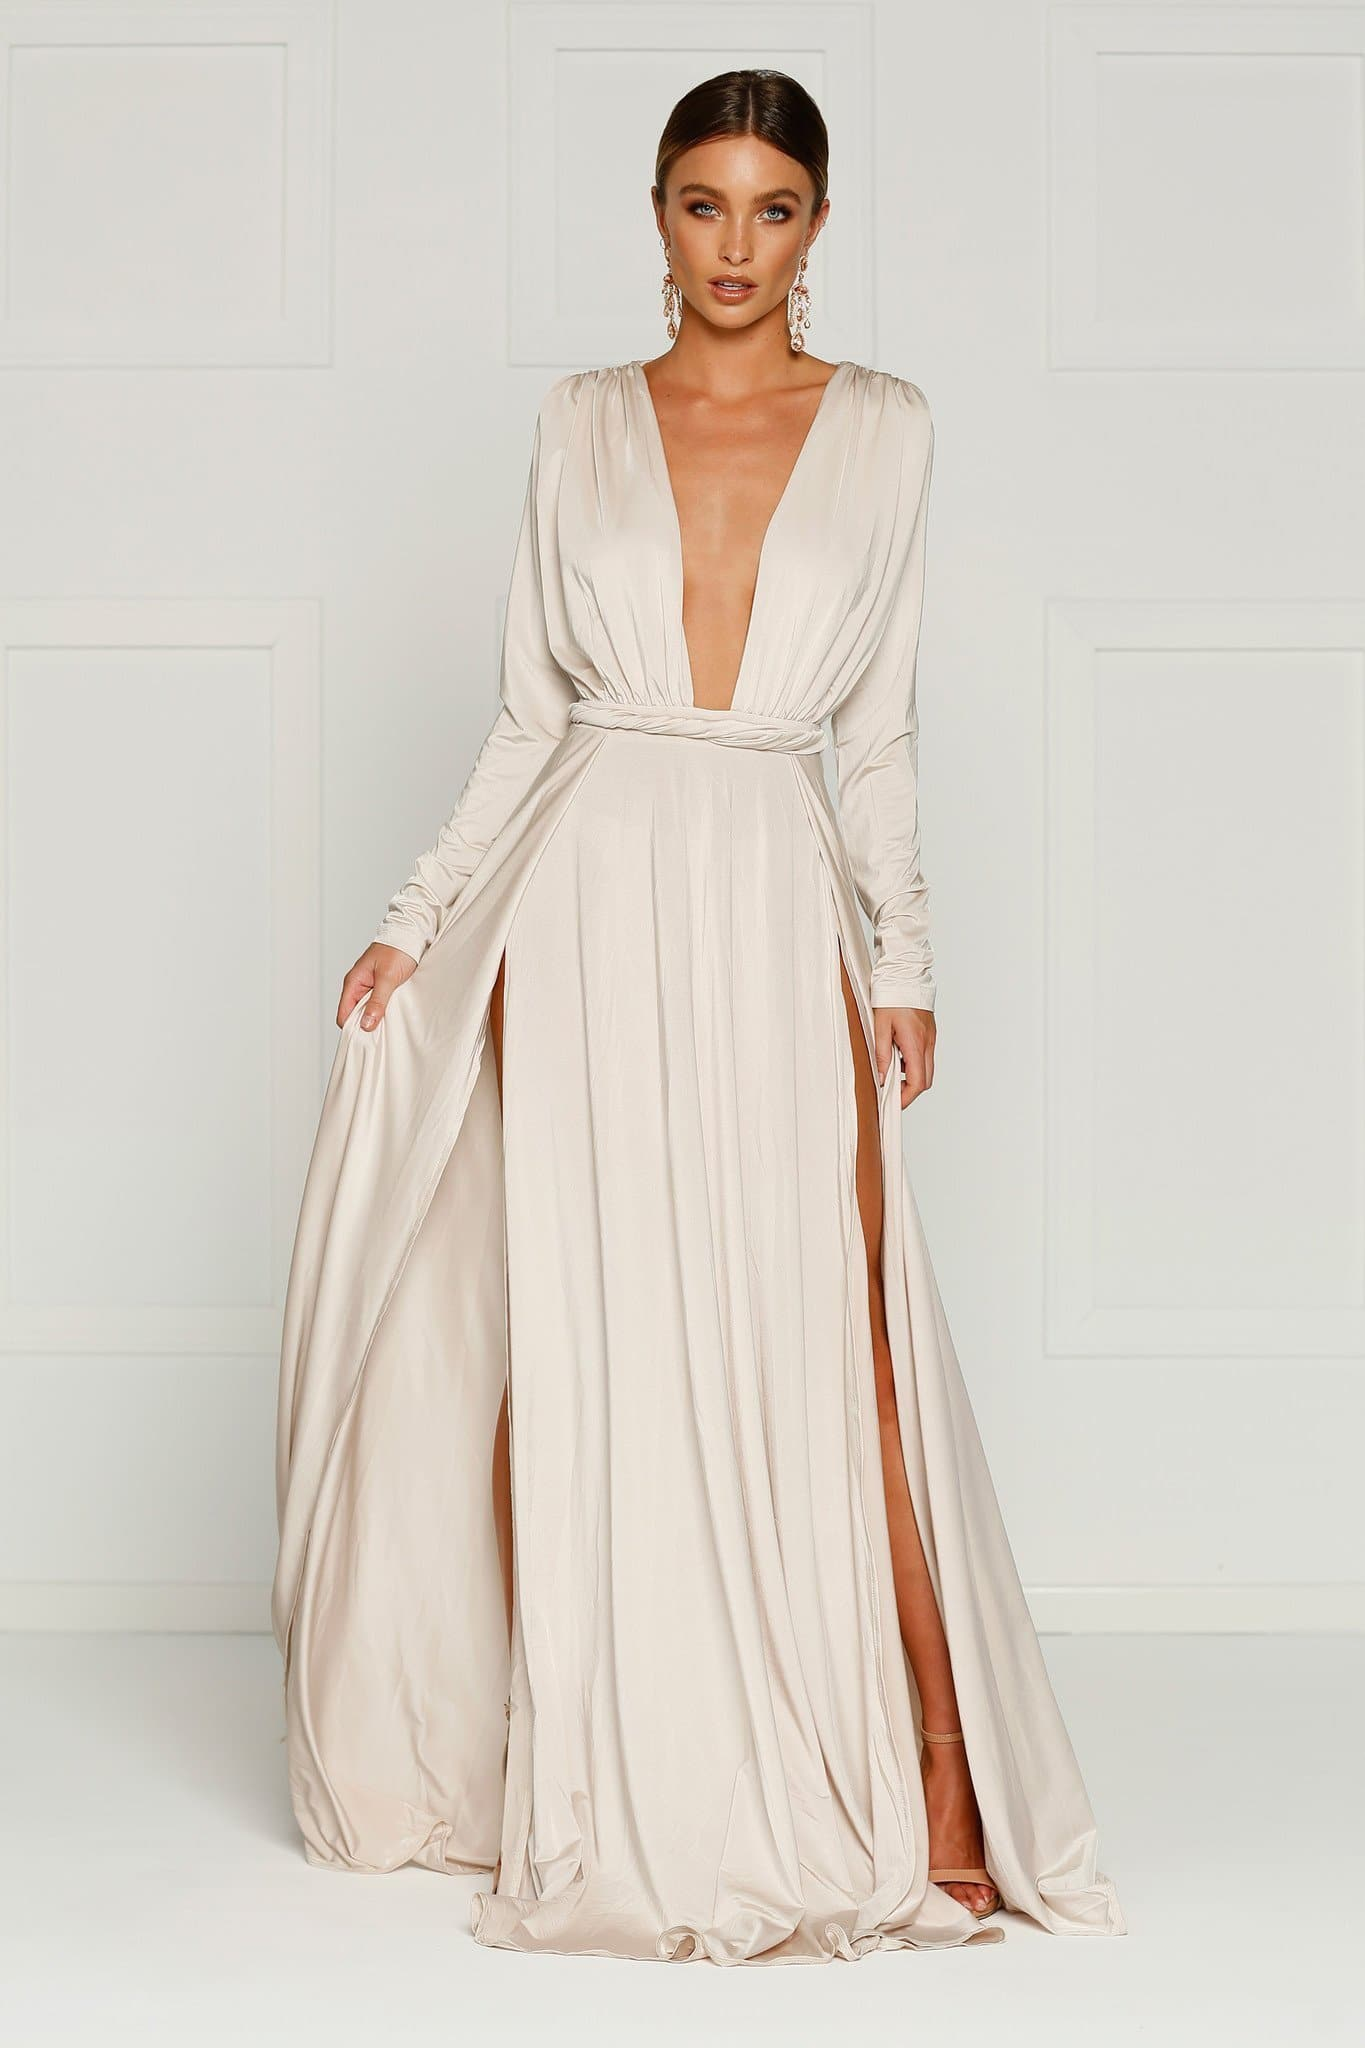 Sahara - Oyster Jersey Gown with Long Sleeves & Plunge Neckline